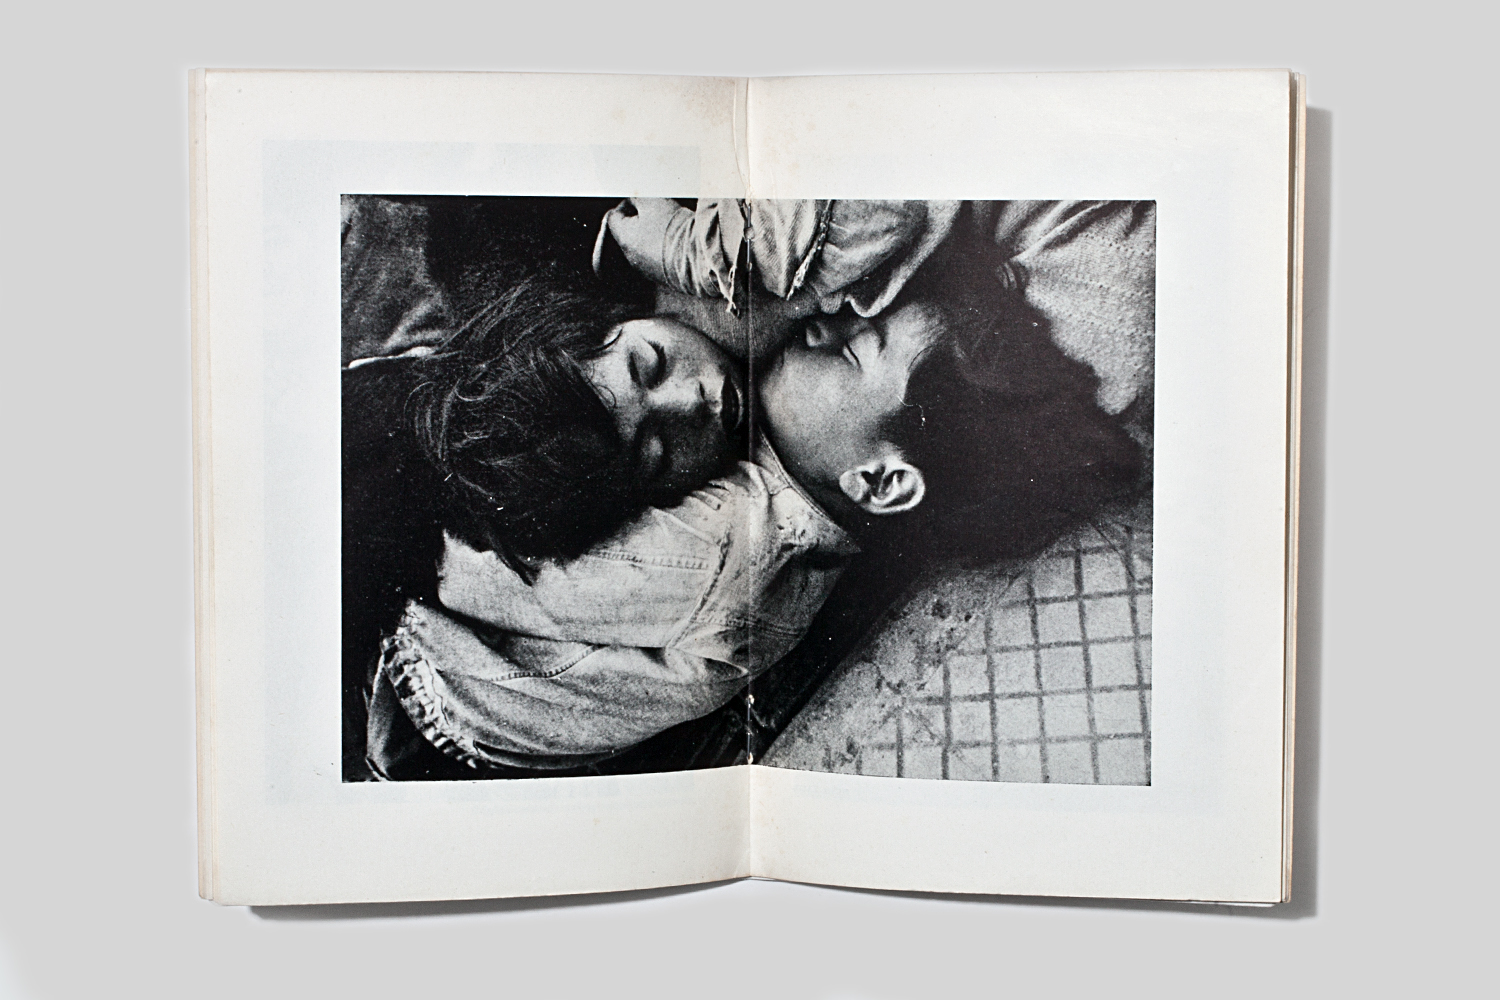 I went to a photography show at Le Bal in Paris at the beginning of the year about the history of Latin American photography books, and there were some books there that I'd never come across. I rarely feel the need to own things, but Sergio Larrain's El Rectangolo En La Mano published in 1963 made me want to snaffle it out of the exhibition and hide it in my back pocket. As that was not really an option, the crusade to own this book and learn more about Larrain's work, began a lovely little journey into Latin American books past and present. The book that best sums up this serendipitous journey is The Latin American Photobook, published by Aperture this January. In it, Horacio Fernandez presents 150 volumes from all over Latin America, starting in the 1920s and leading the present day.                                                               —Anne-Celine Jaeger is the author of Image Makers, Image Takers - The Essential Guide to Photography by Those in the Know